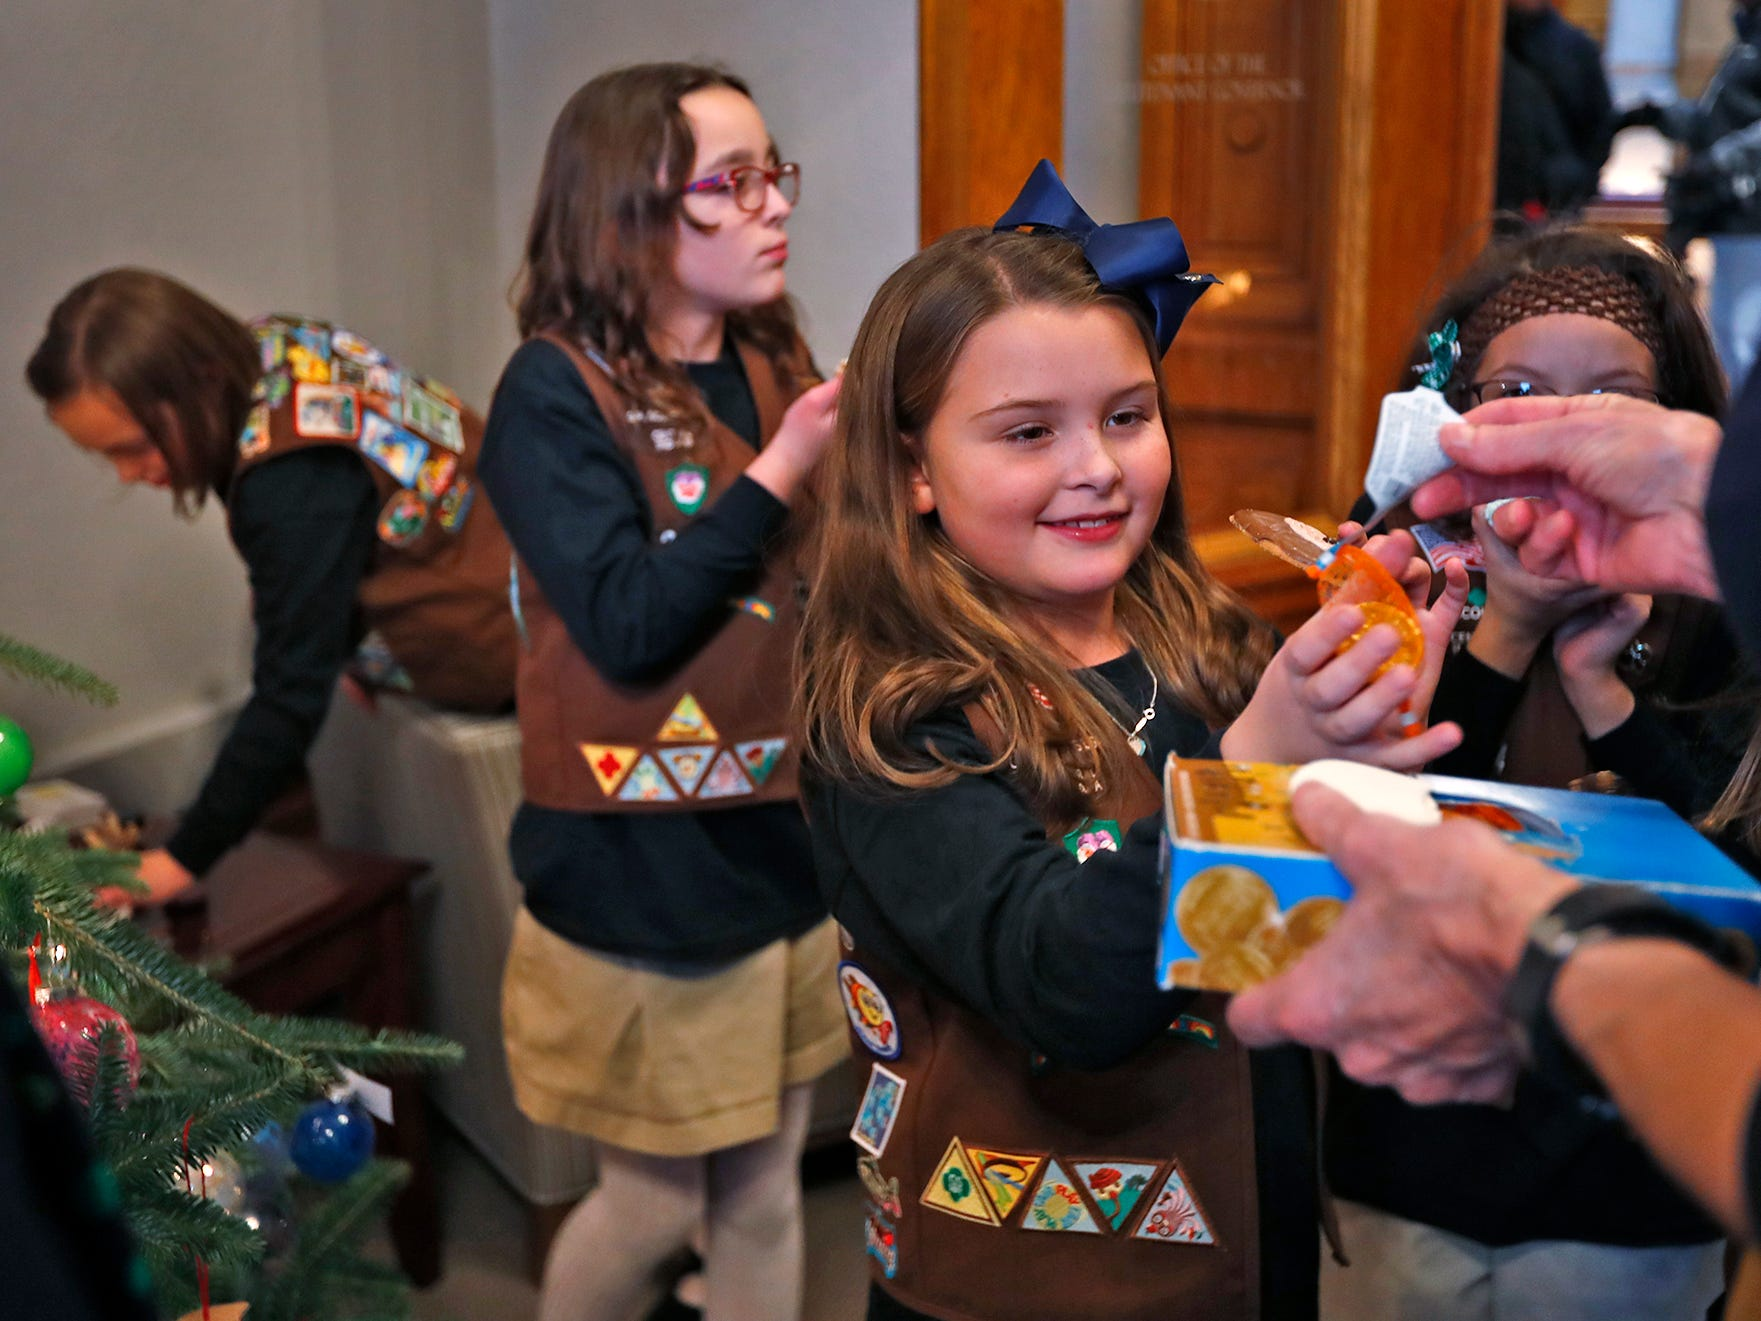 Katie Callahan, center, and other Brownies receive Hanukkah gold chocolate coins from Lieutenant Governor Suzanne Crouch after they helped her decorate her Statehouse tree for the holidays, Wednesday, Dec. 5, 2018.  They used ornaments created by Girl Scouts from across Central Indiana for the tree.